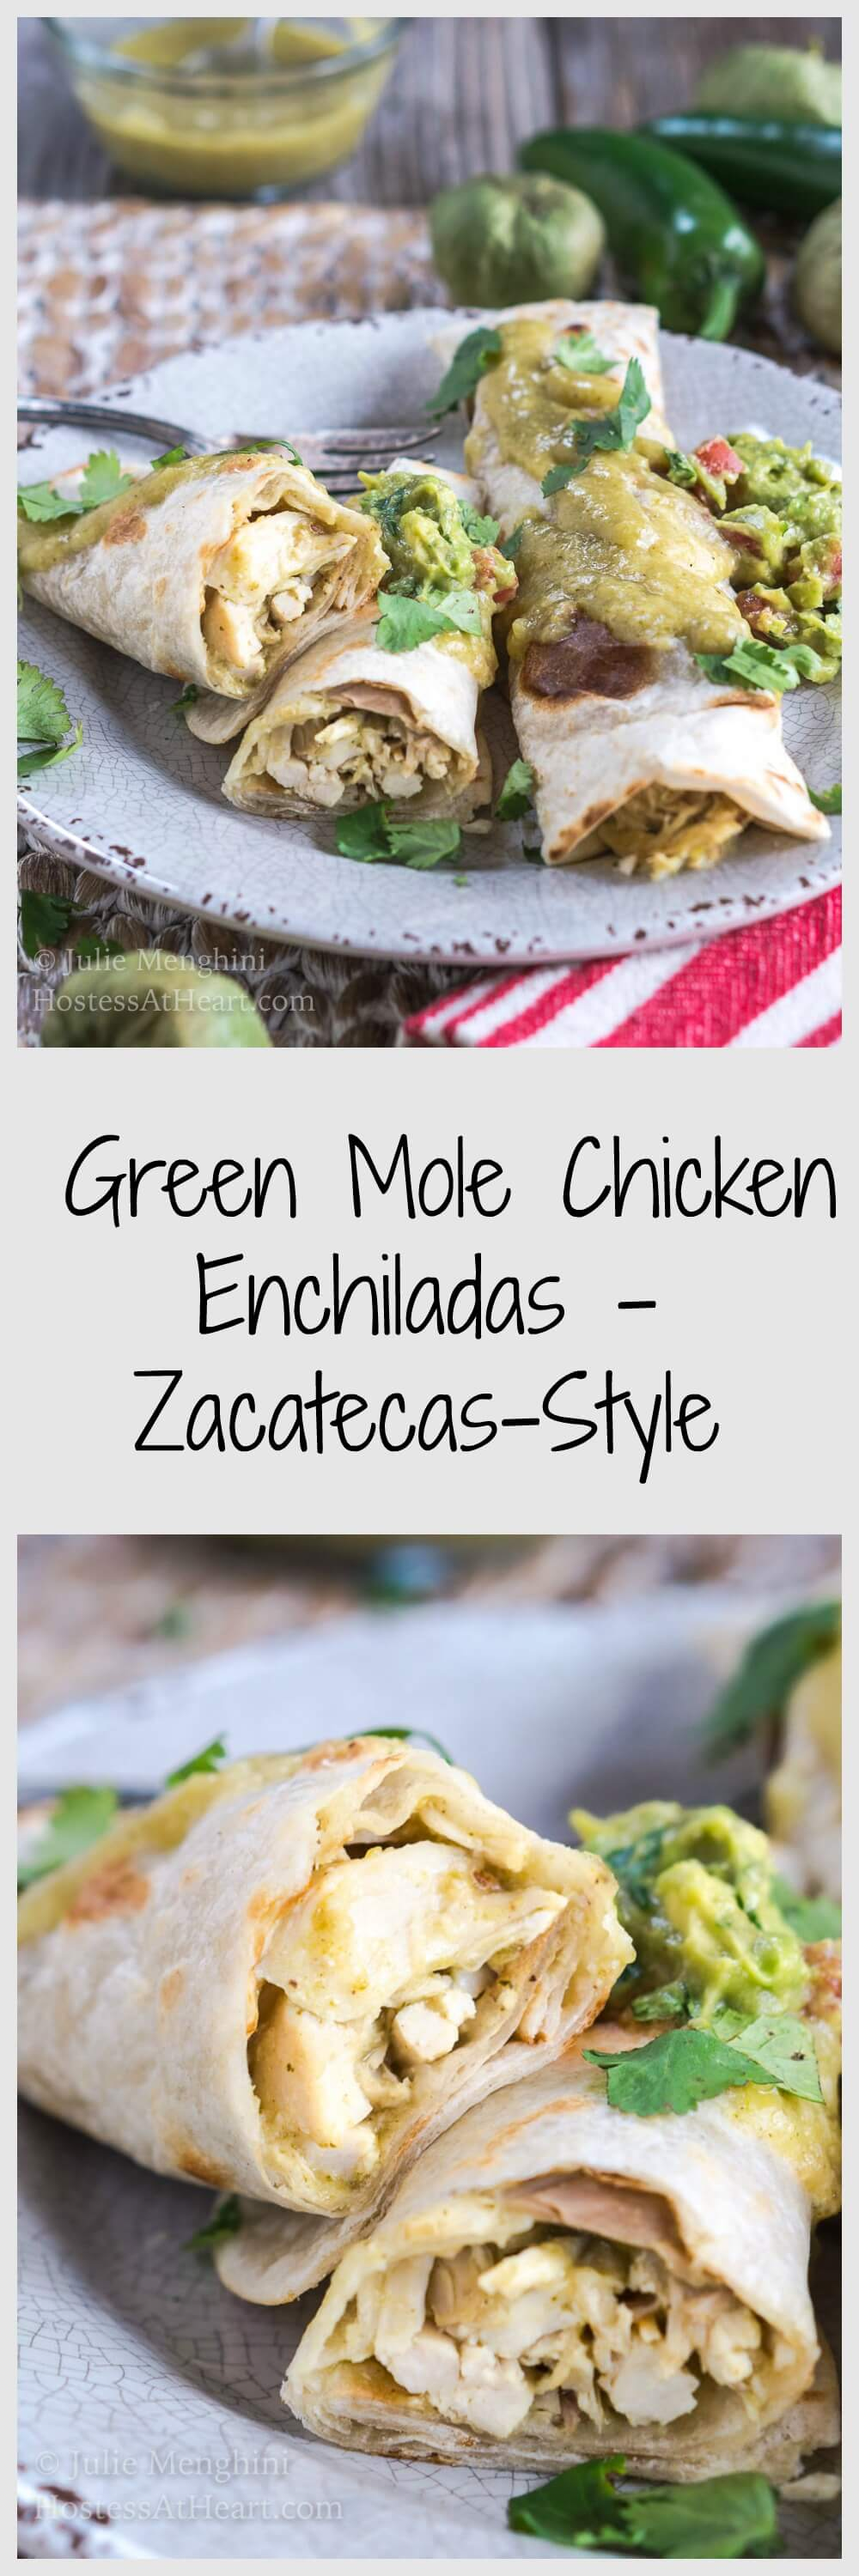 Really Good Green Mole Chicken Enchiladas - Zacatecas-Style are so flavorful and will be your favorite Enchiladas recipe | HostessAtHeart.com